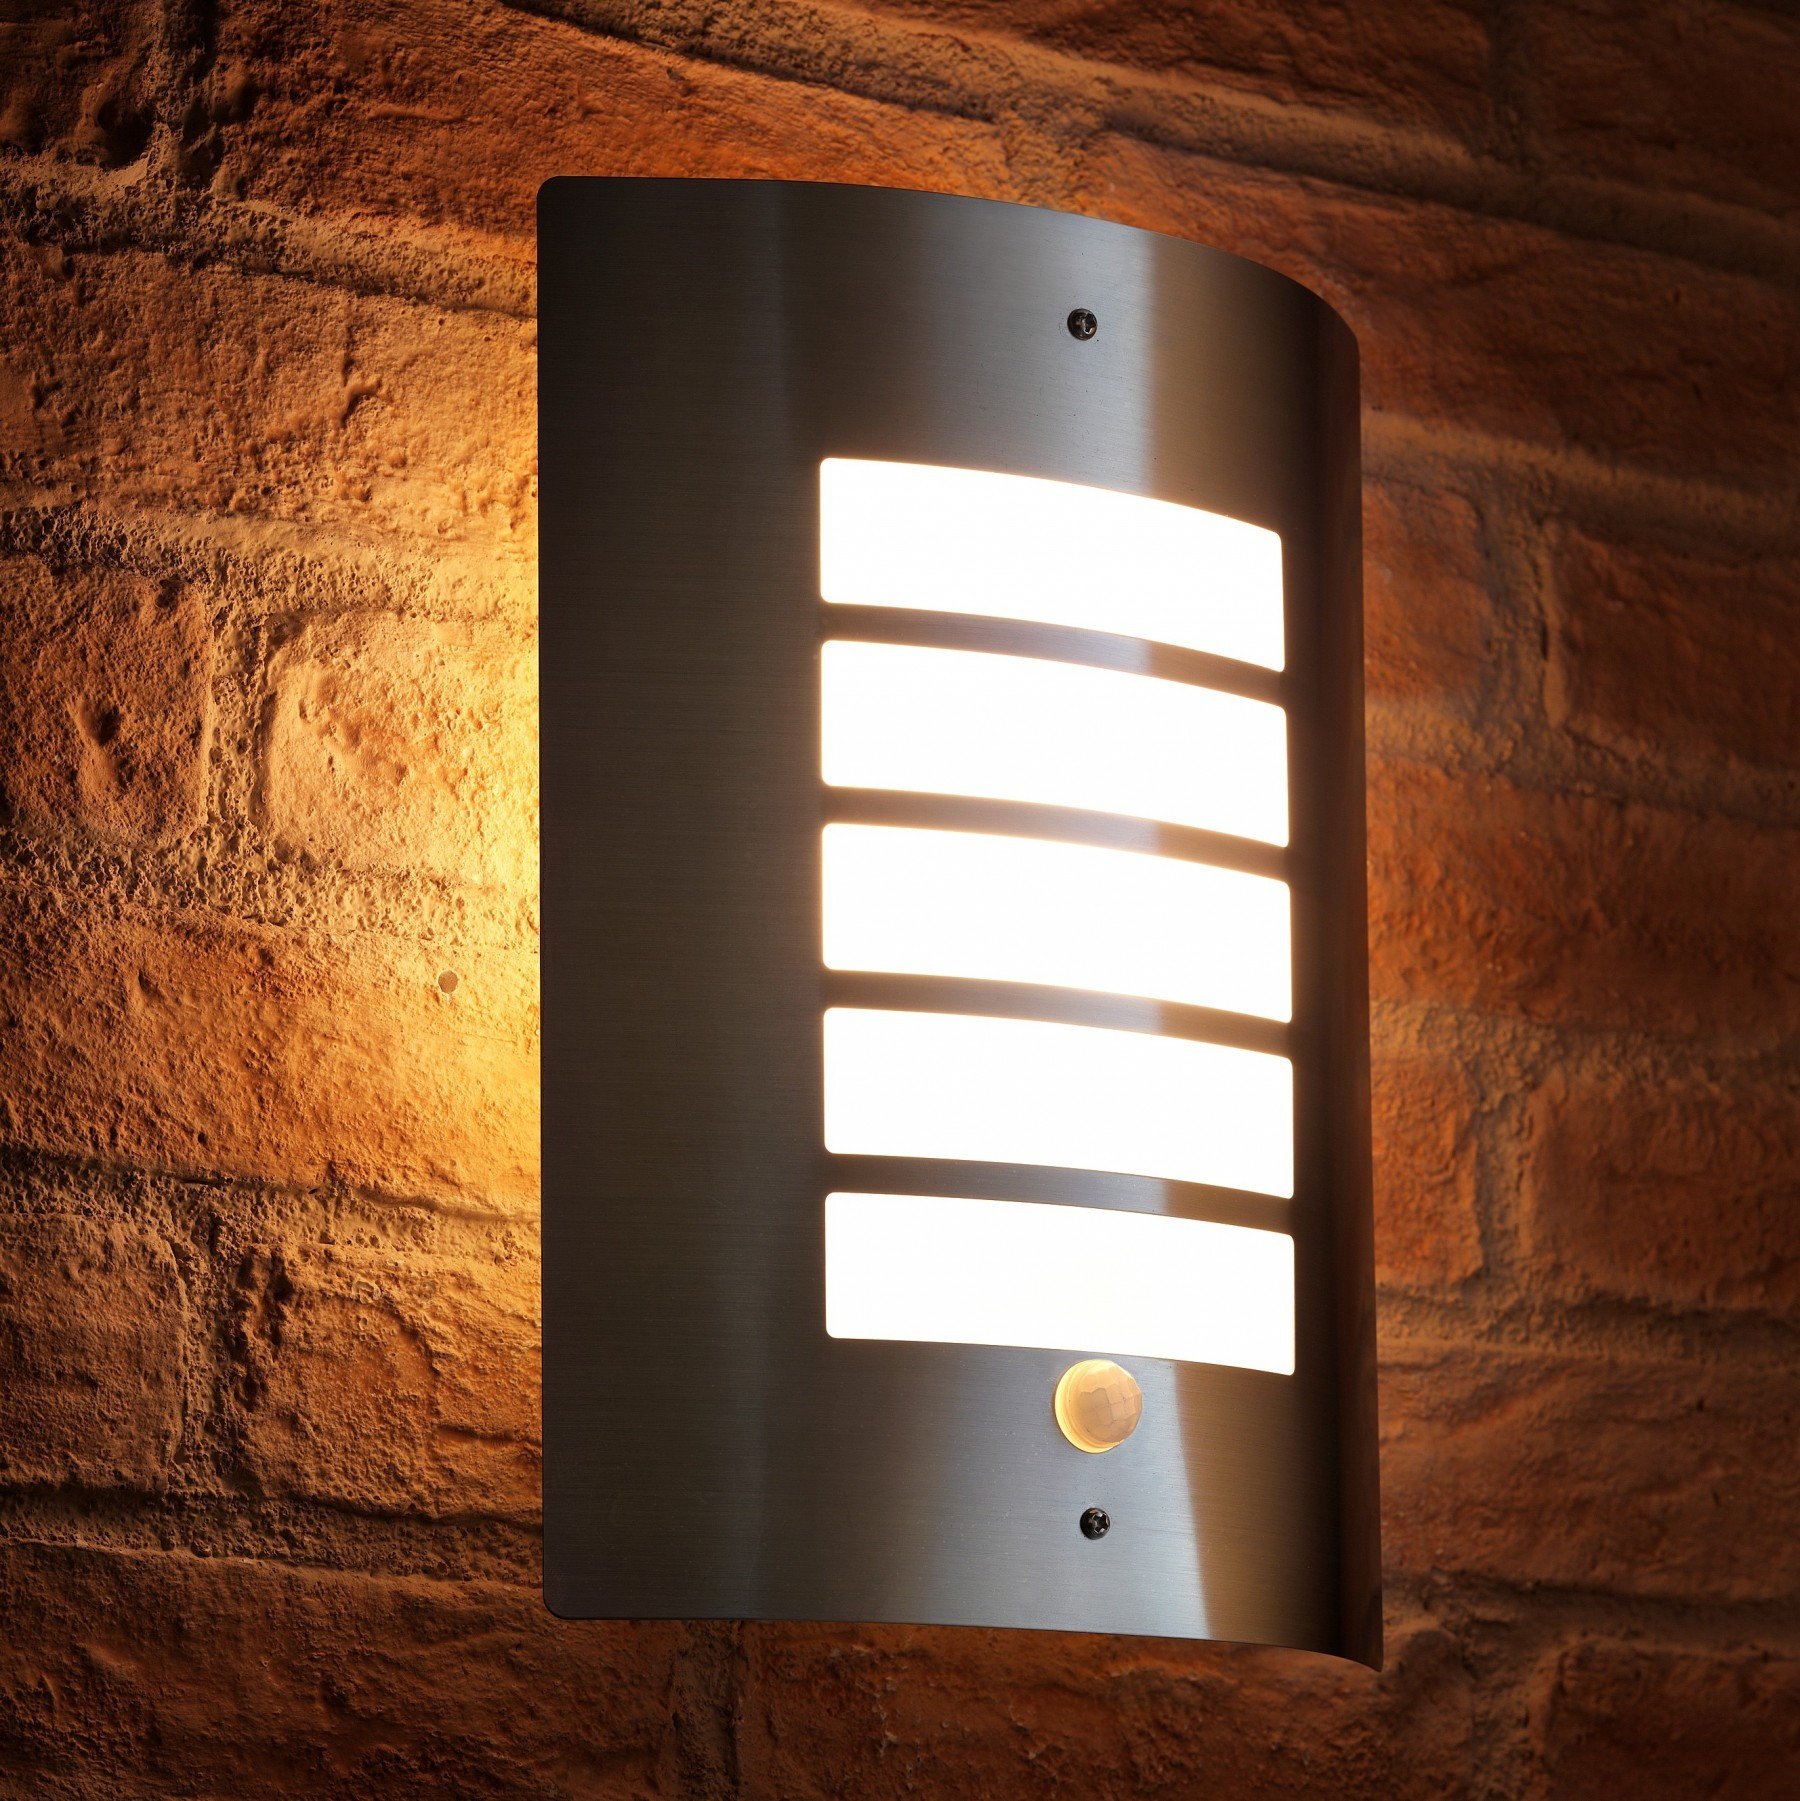 Auraglow dusk till dawn daylight pir motion detection sensor outdoor wall light stainless steel